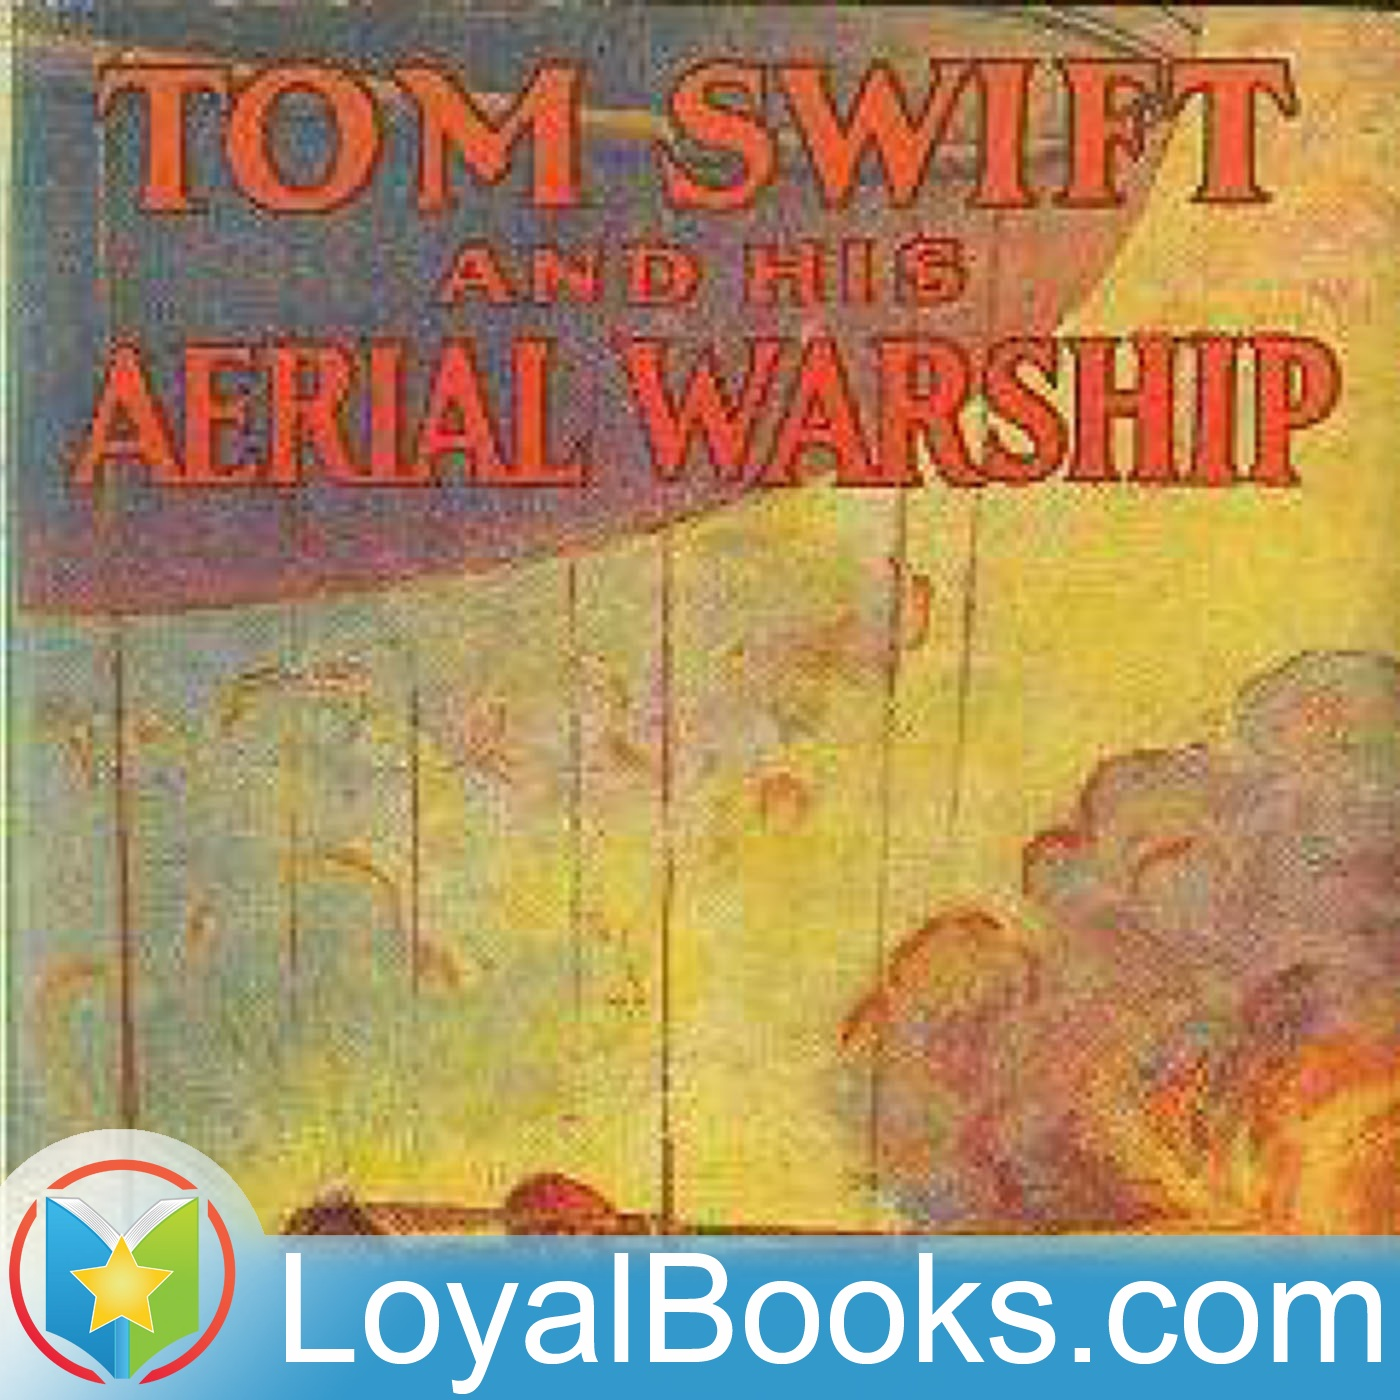 <![CDATA[Tom Swift and His Aerial Warship, or, the Naval Terror of the Seas by Victor Appleton]]>